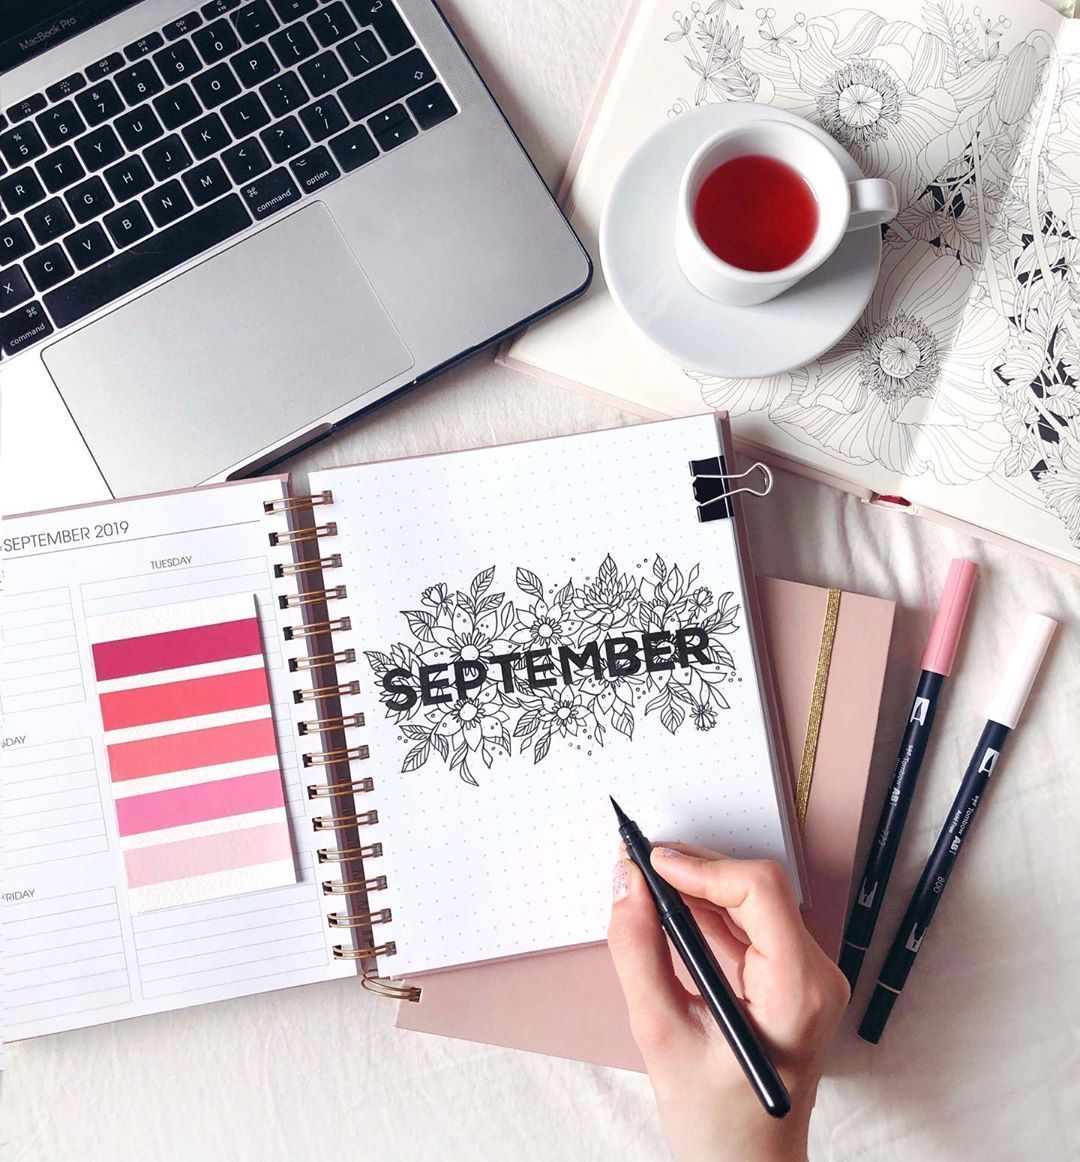 HELLO SEPTEMBER! ✨ nice to see you again! New inside pages layout! WEEK - DOTS ⭐️ it's gonna be my 2019's favorite! ???? and you can… #helloseptember HELLO SEPTEMBER! ✨ nice to see you again! New inside pages layout! WEEK - DOTS ⭐️ it's gonna be my 2019's favorite! ???? and you can… #helloseptember HELLO SEPTEMBER! ✨ nice to see you again! New inside pages layout! WEEK - DOTS ⭐️ it's gonna be my 2019's favorite! ???? and you can… #helloseptember HELLO SEPTEMBE #helloseptember